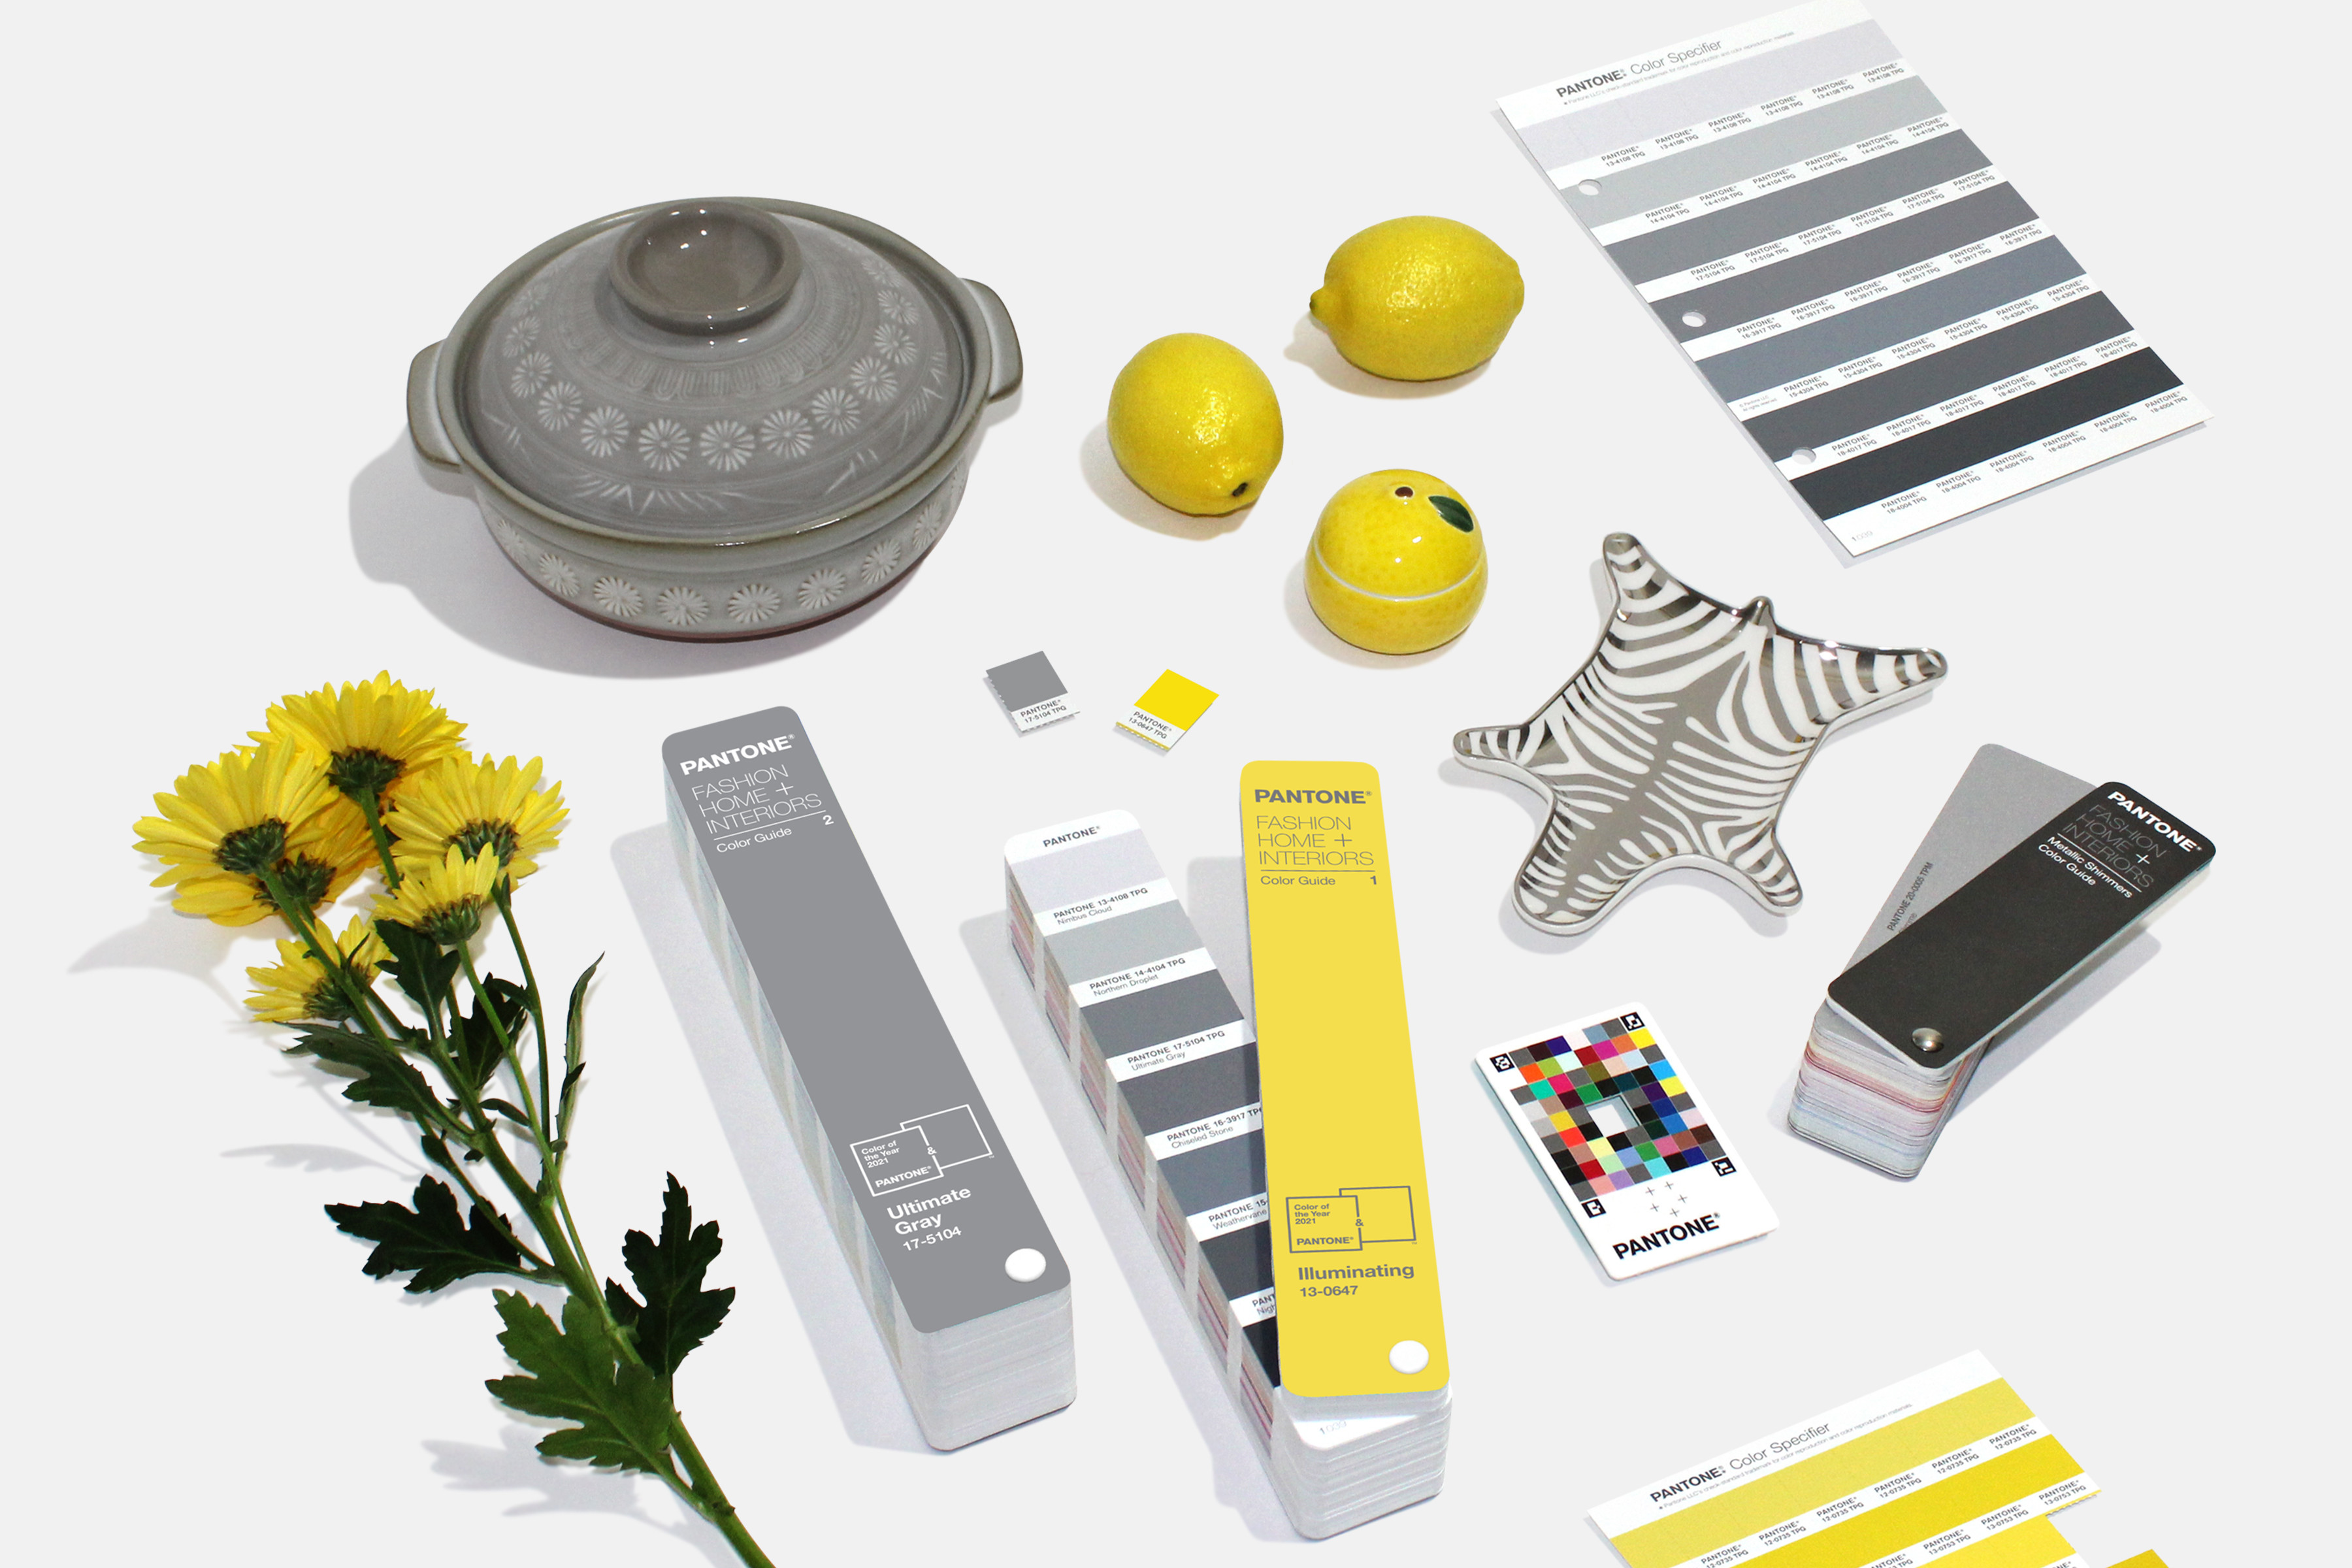 Pantone colors of the year for 2021 are Ultimate Gray and Illuminating. (Image: Pantone)